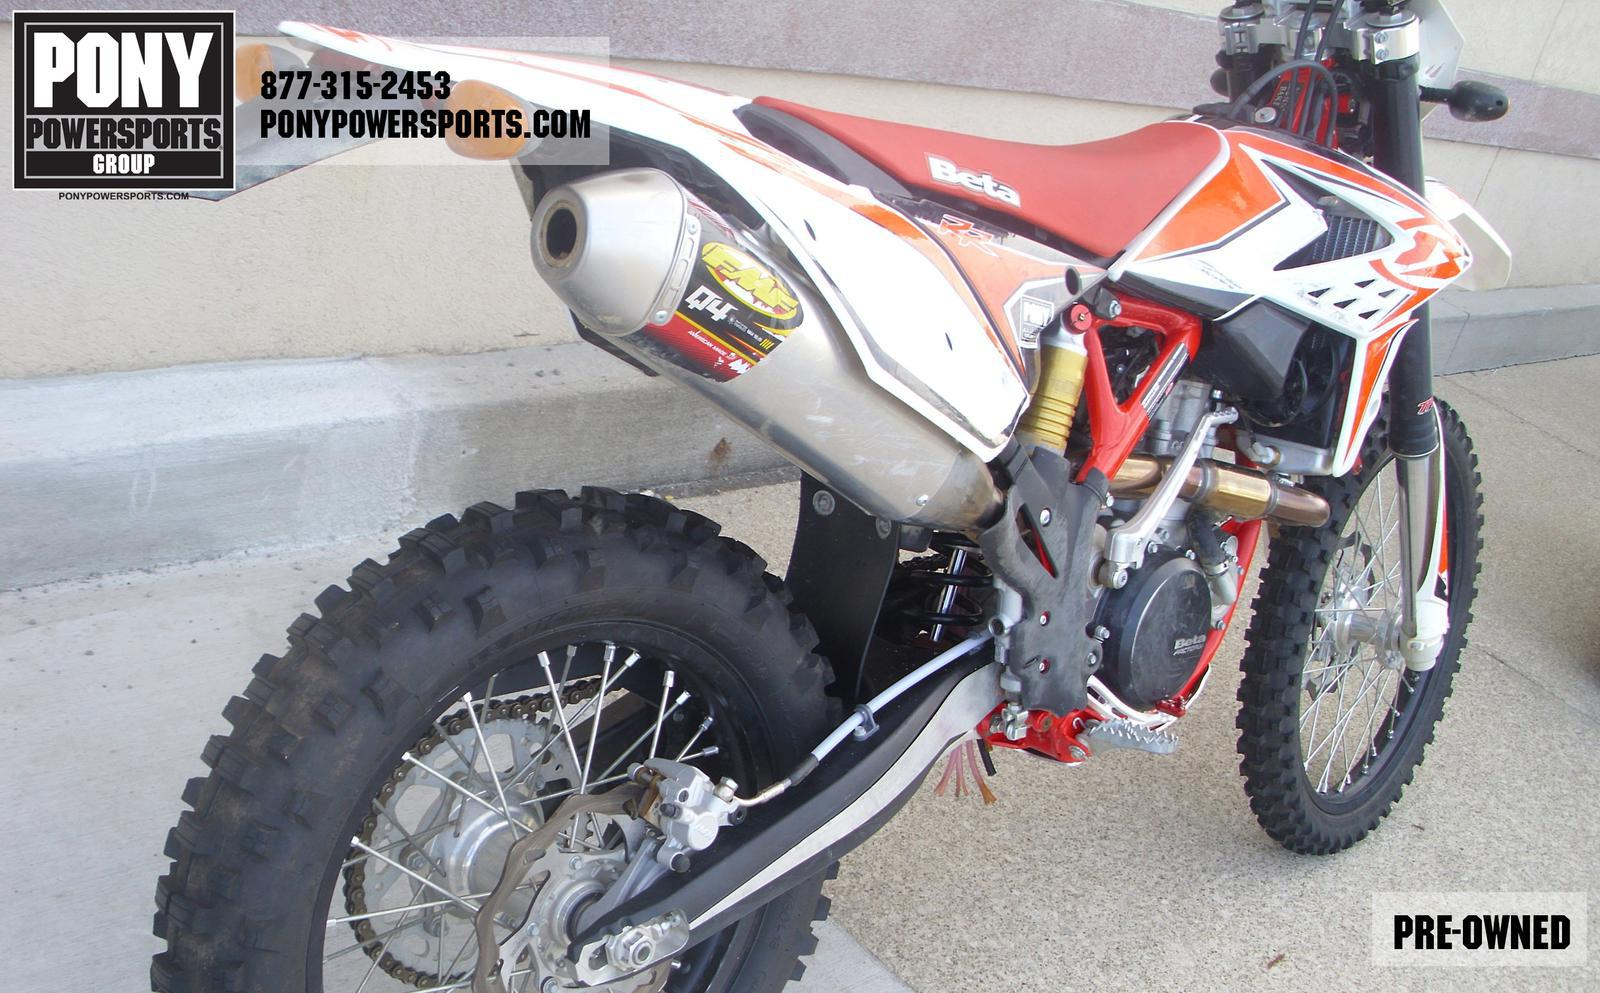 See more photos for this Beta Motorcycles 350RR, 2013 motorcycle listing